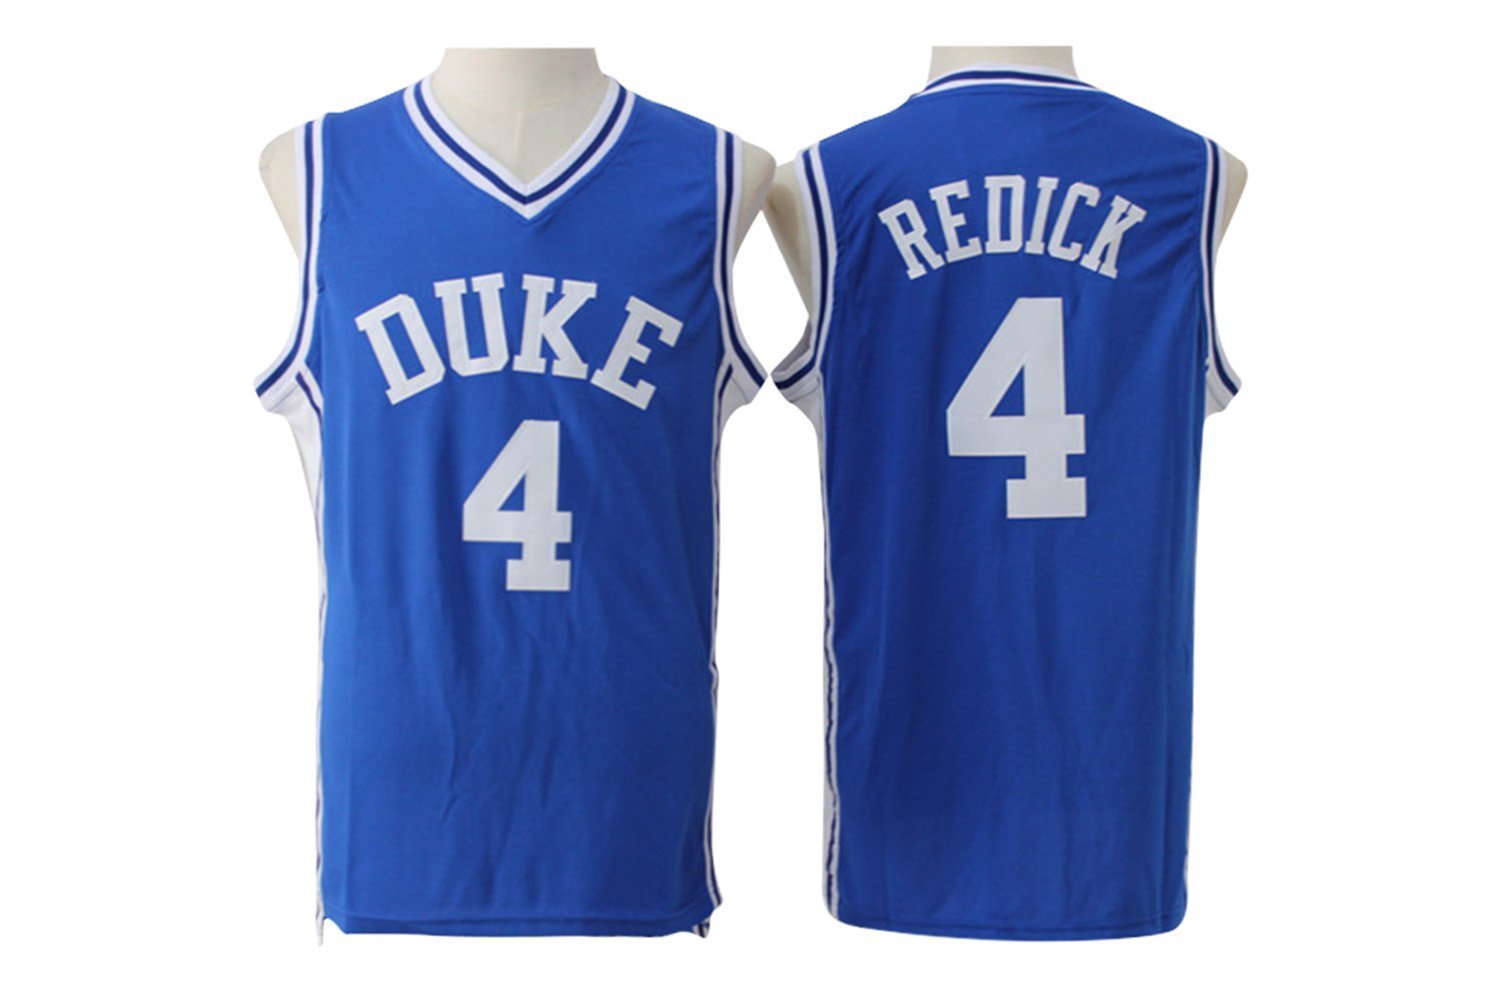 e66e6e1e48d4 Men s Duke University  4 J.J. Redick Basketball Jersey 100% Stitched Mesh Throwback  Jersey 004